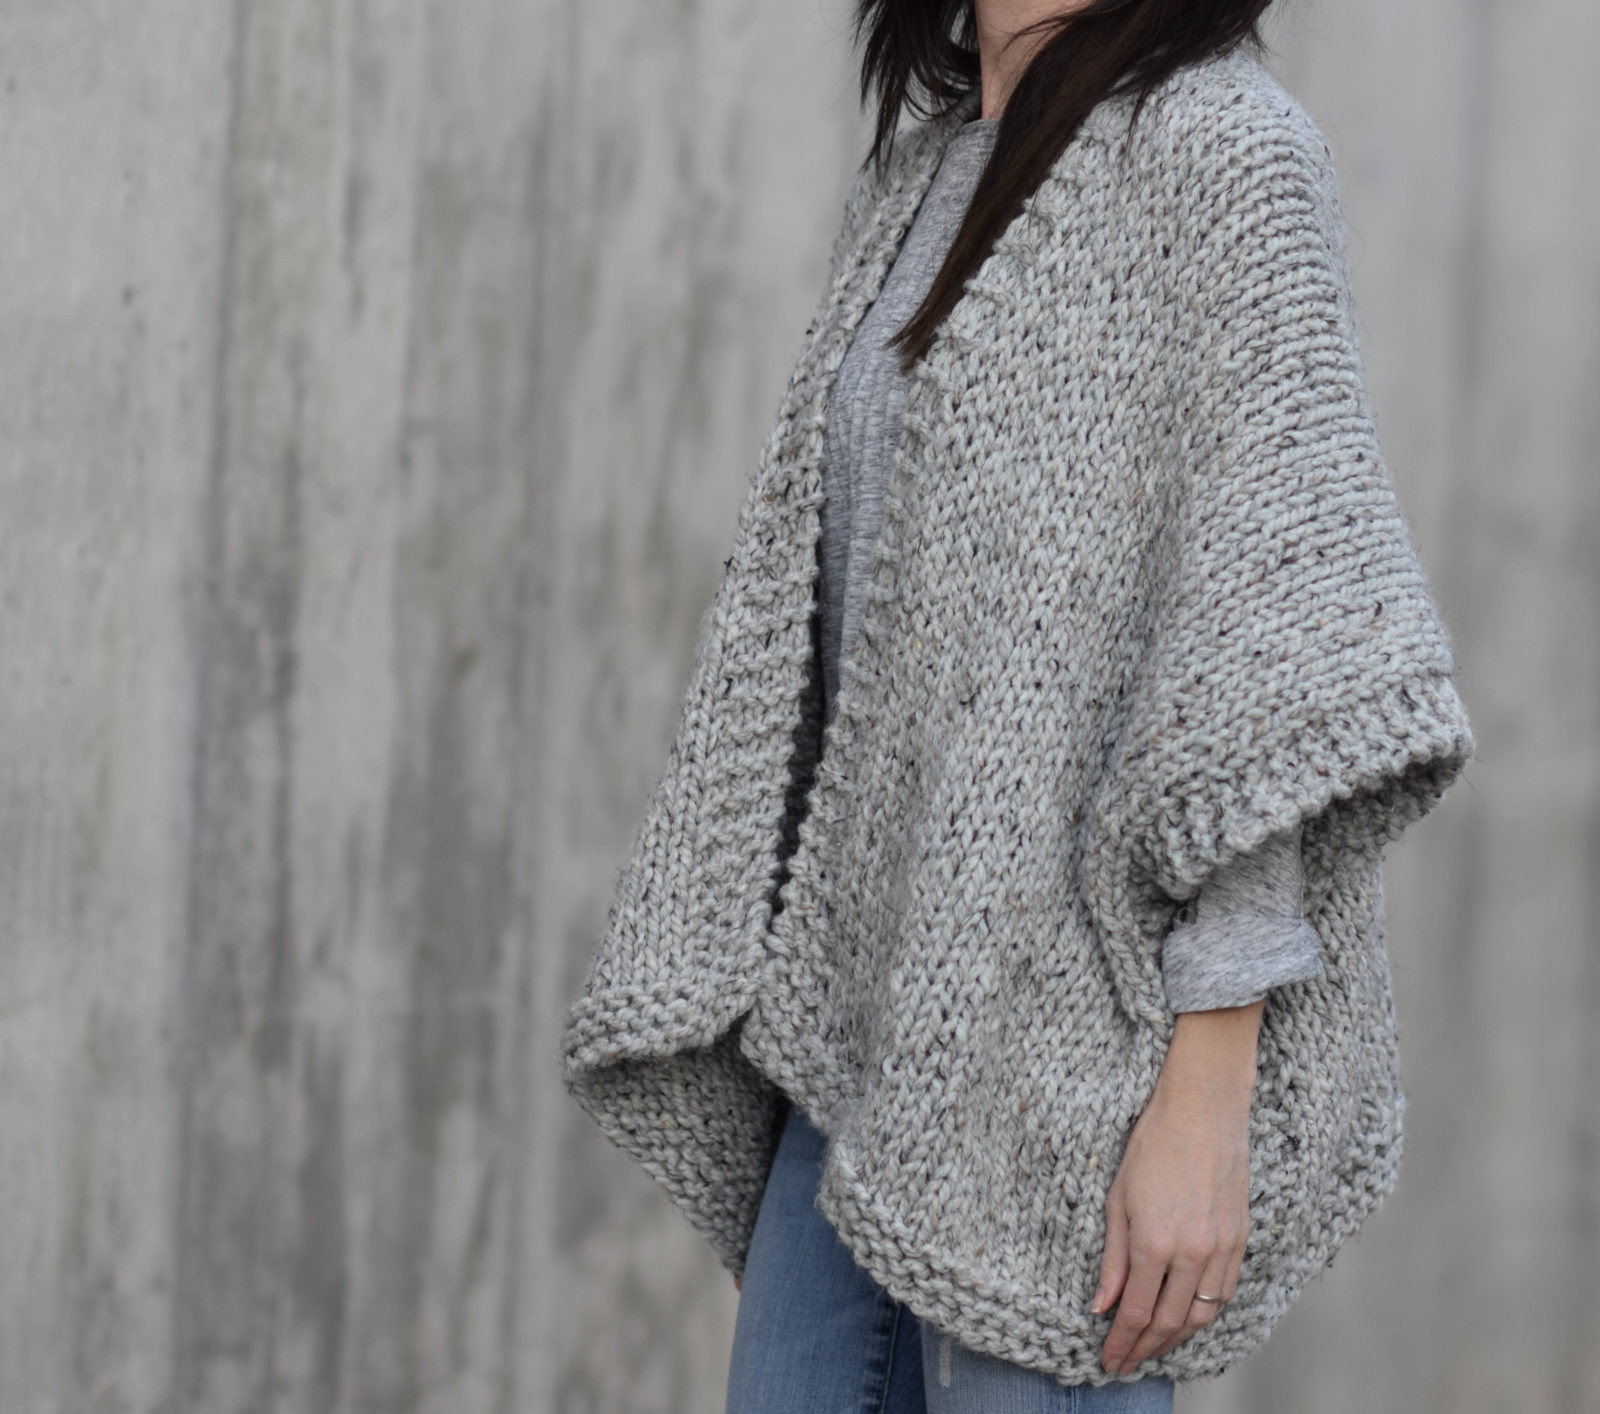 Easy Knitting Patterns Fresh Telluride Easy Knit Kimono Pattern – Mama In A Stitch Of Superb 44 Ideas Easy Knitting Patterns